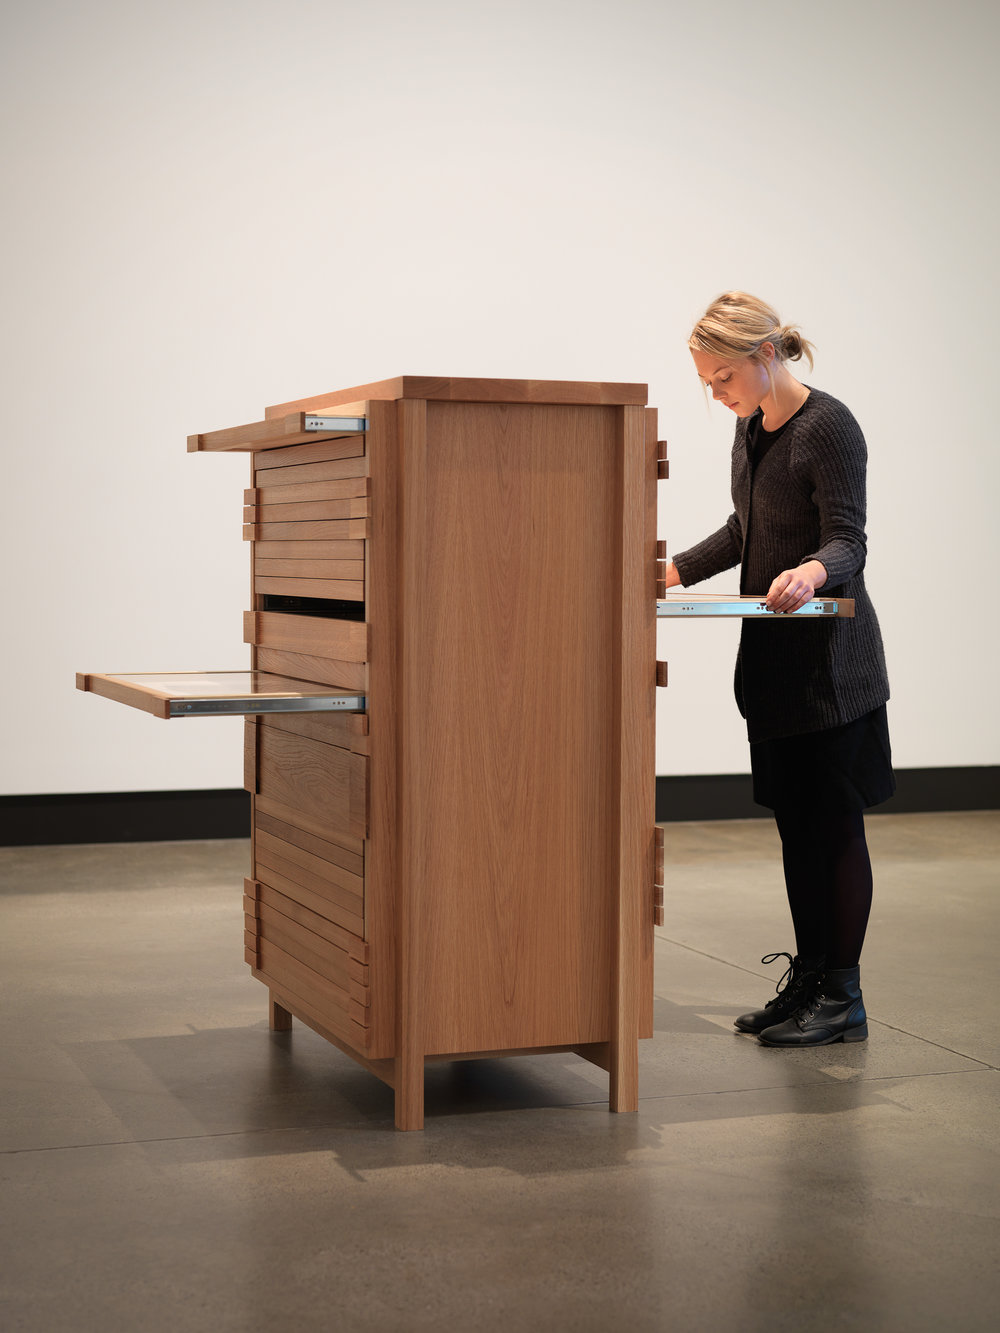 Private Archaeology 1997/2015  Marina Abramović (1946, Belgrade, Yugoslavia; lives and works in New York, NY, USA) Four wood cabinets, mixed media drawings Courtesy of the Marina Abramović Archives and Mona